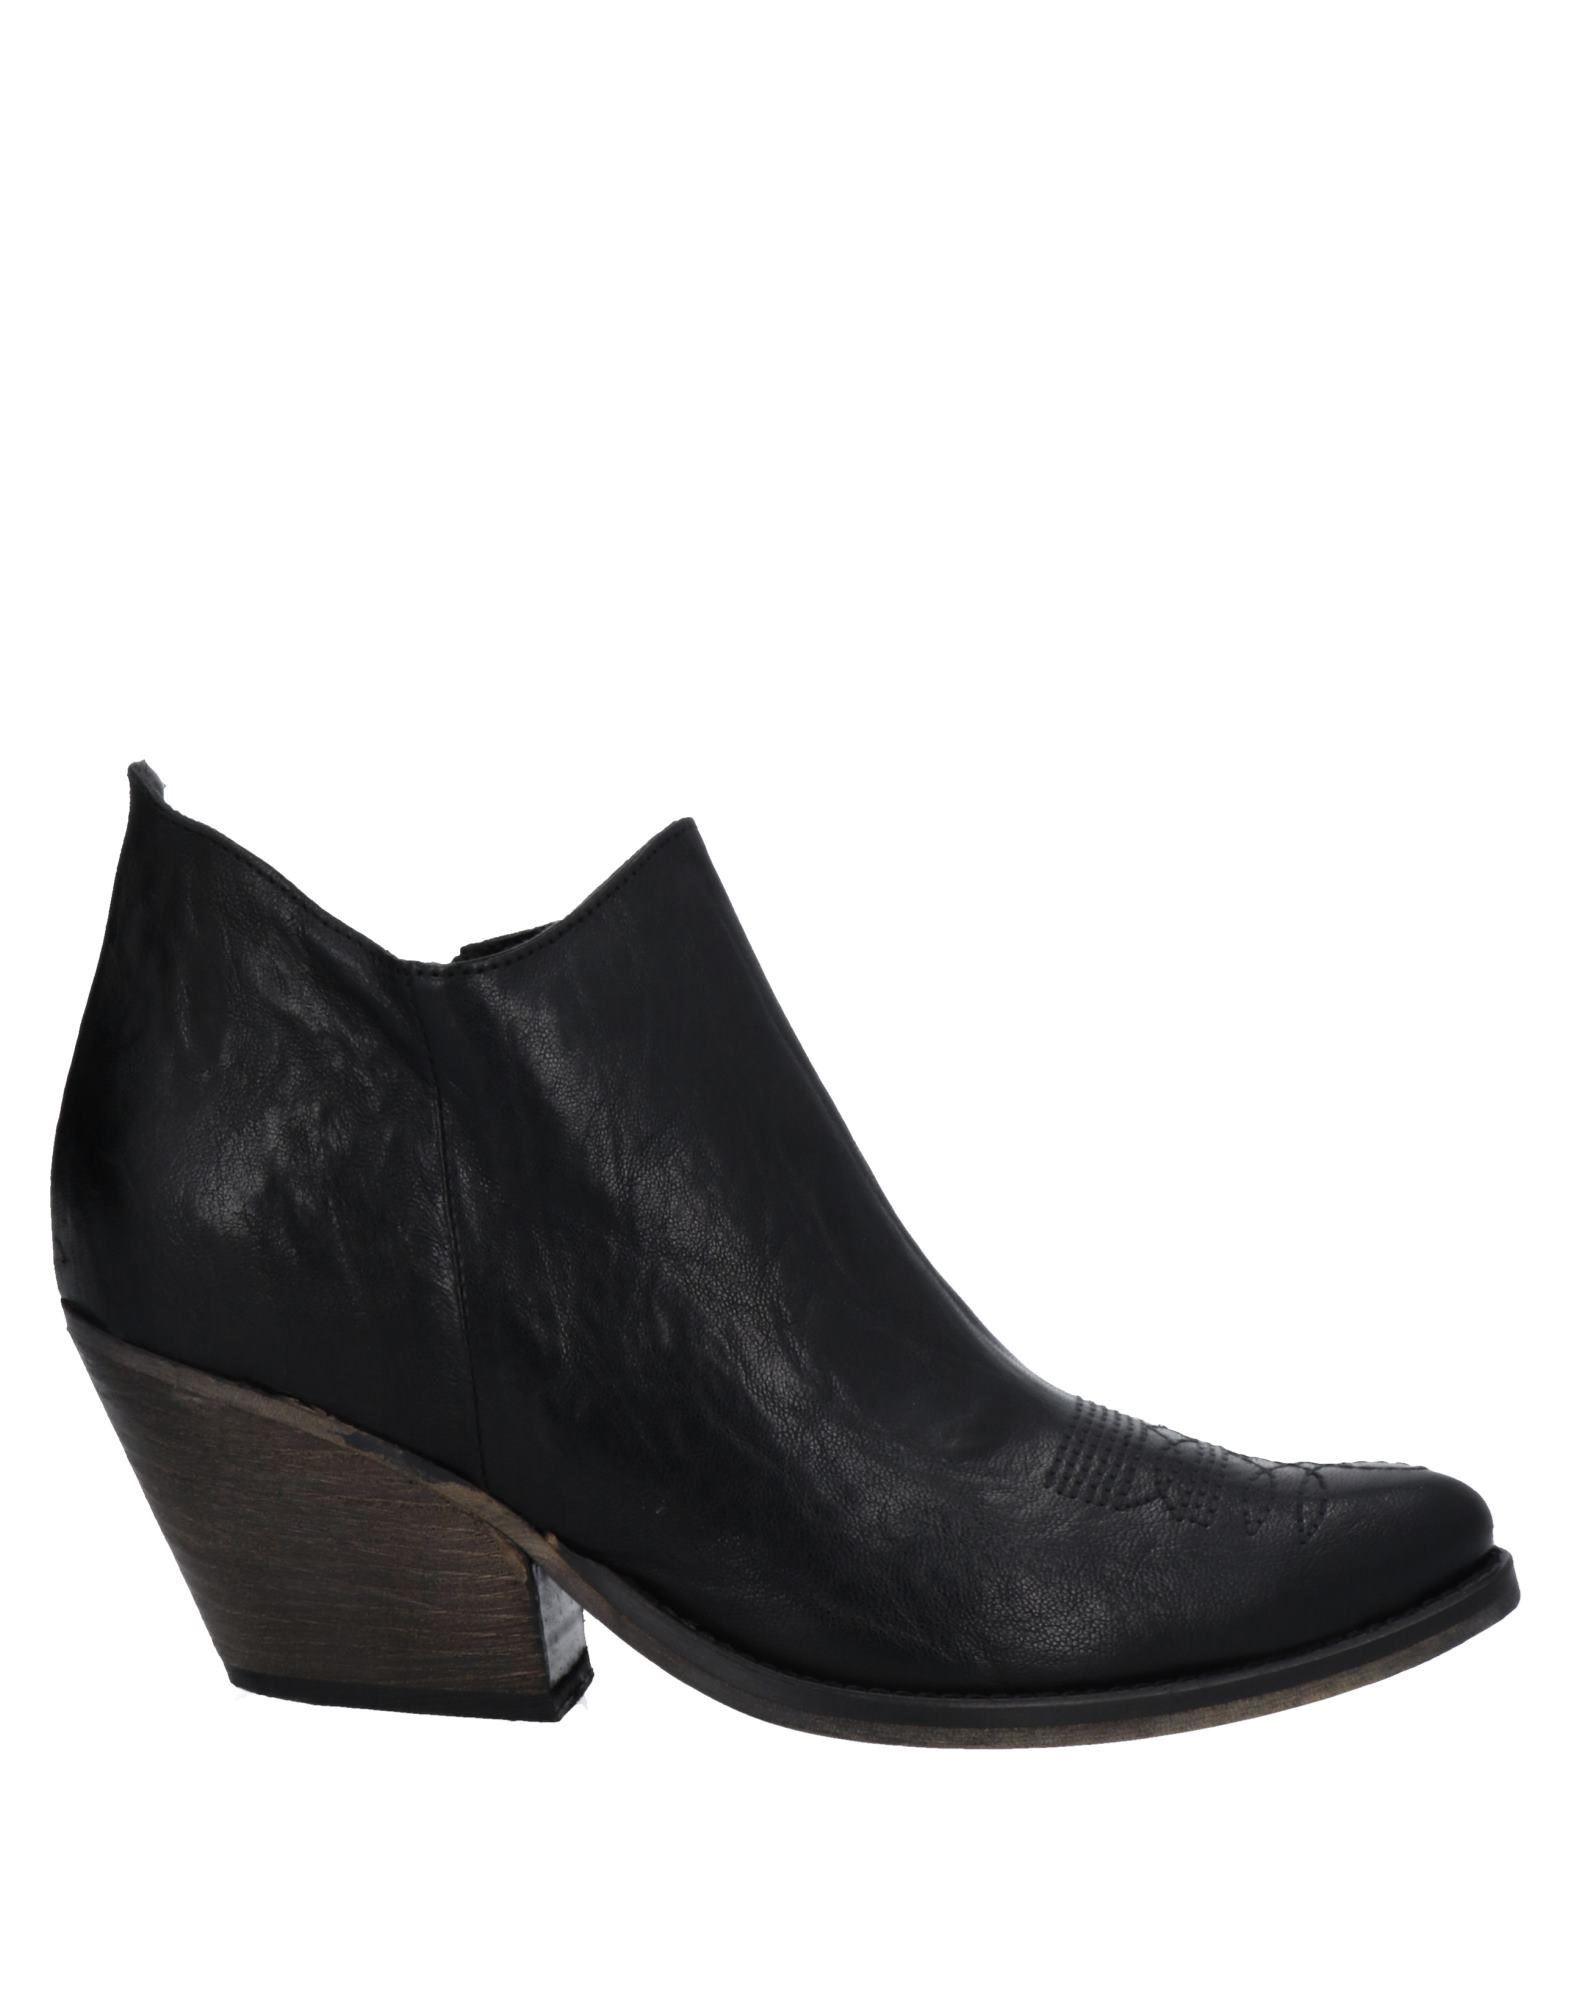 OVYE' by CRISTINA LUCCHI Ankle boots - Item 17039495